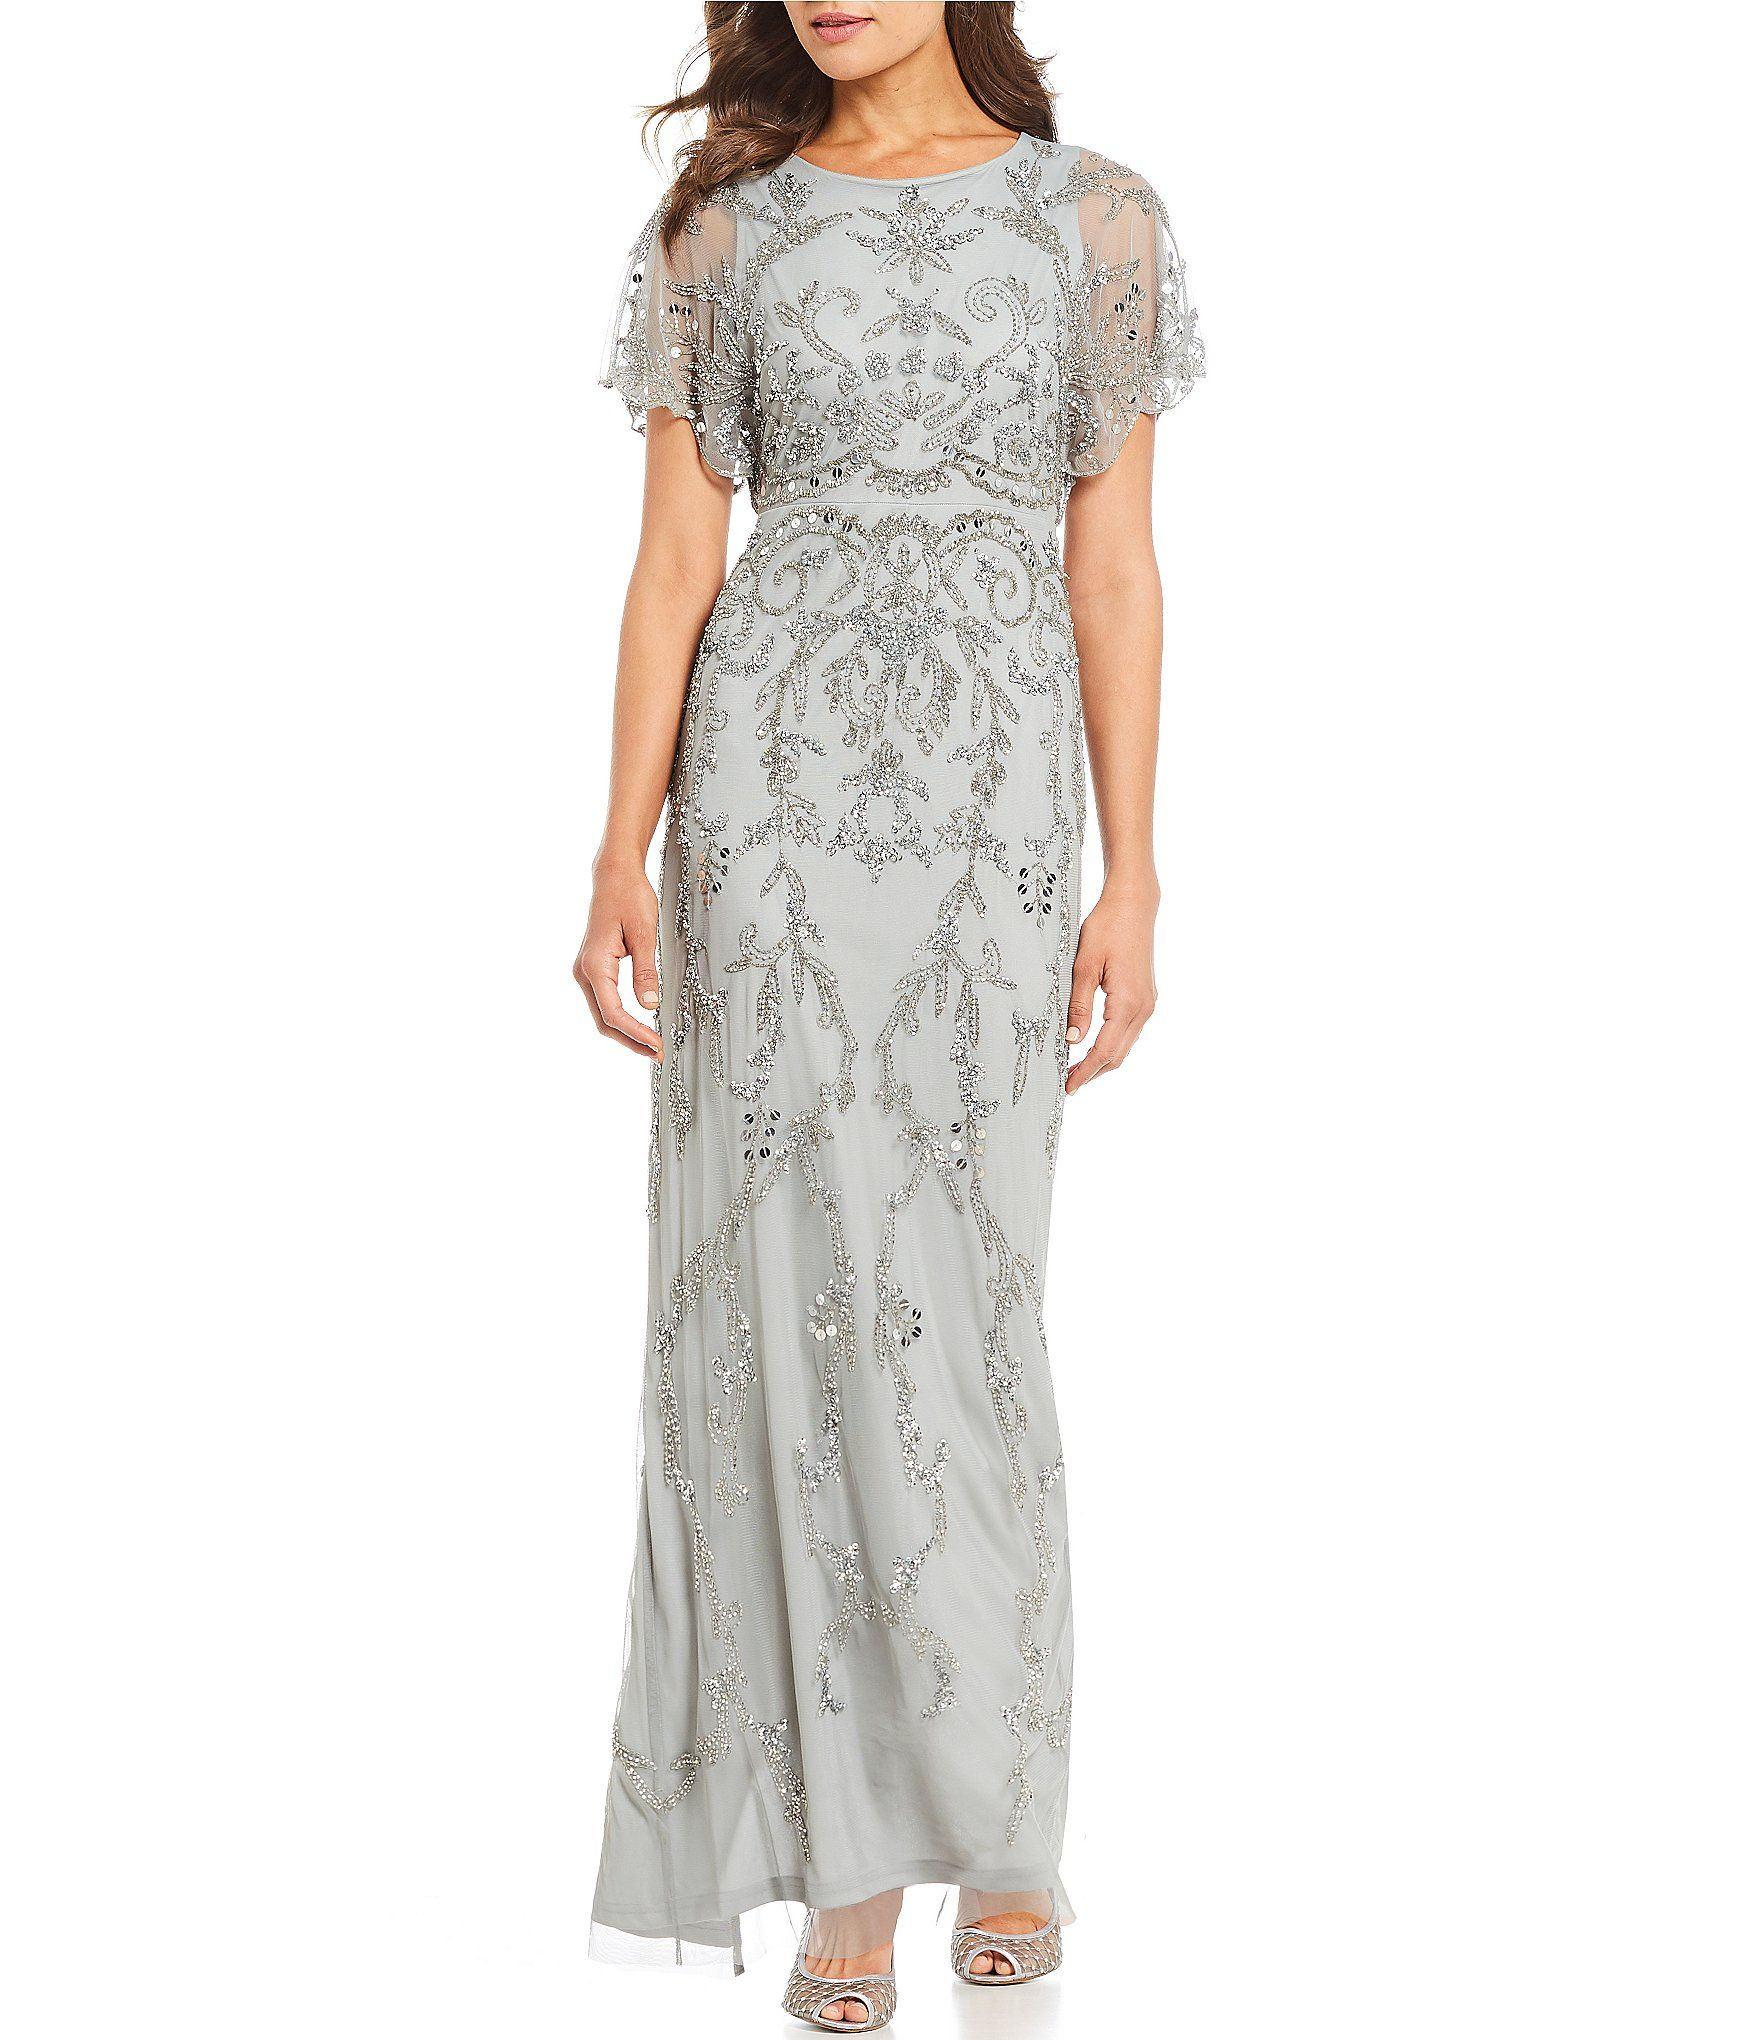 63f896c535a Shop for Adrianna Papell Petite Scallop Edge Sleeve Beaded Gown at Dillards.com.  Visit Dillards.com to find clothing